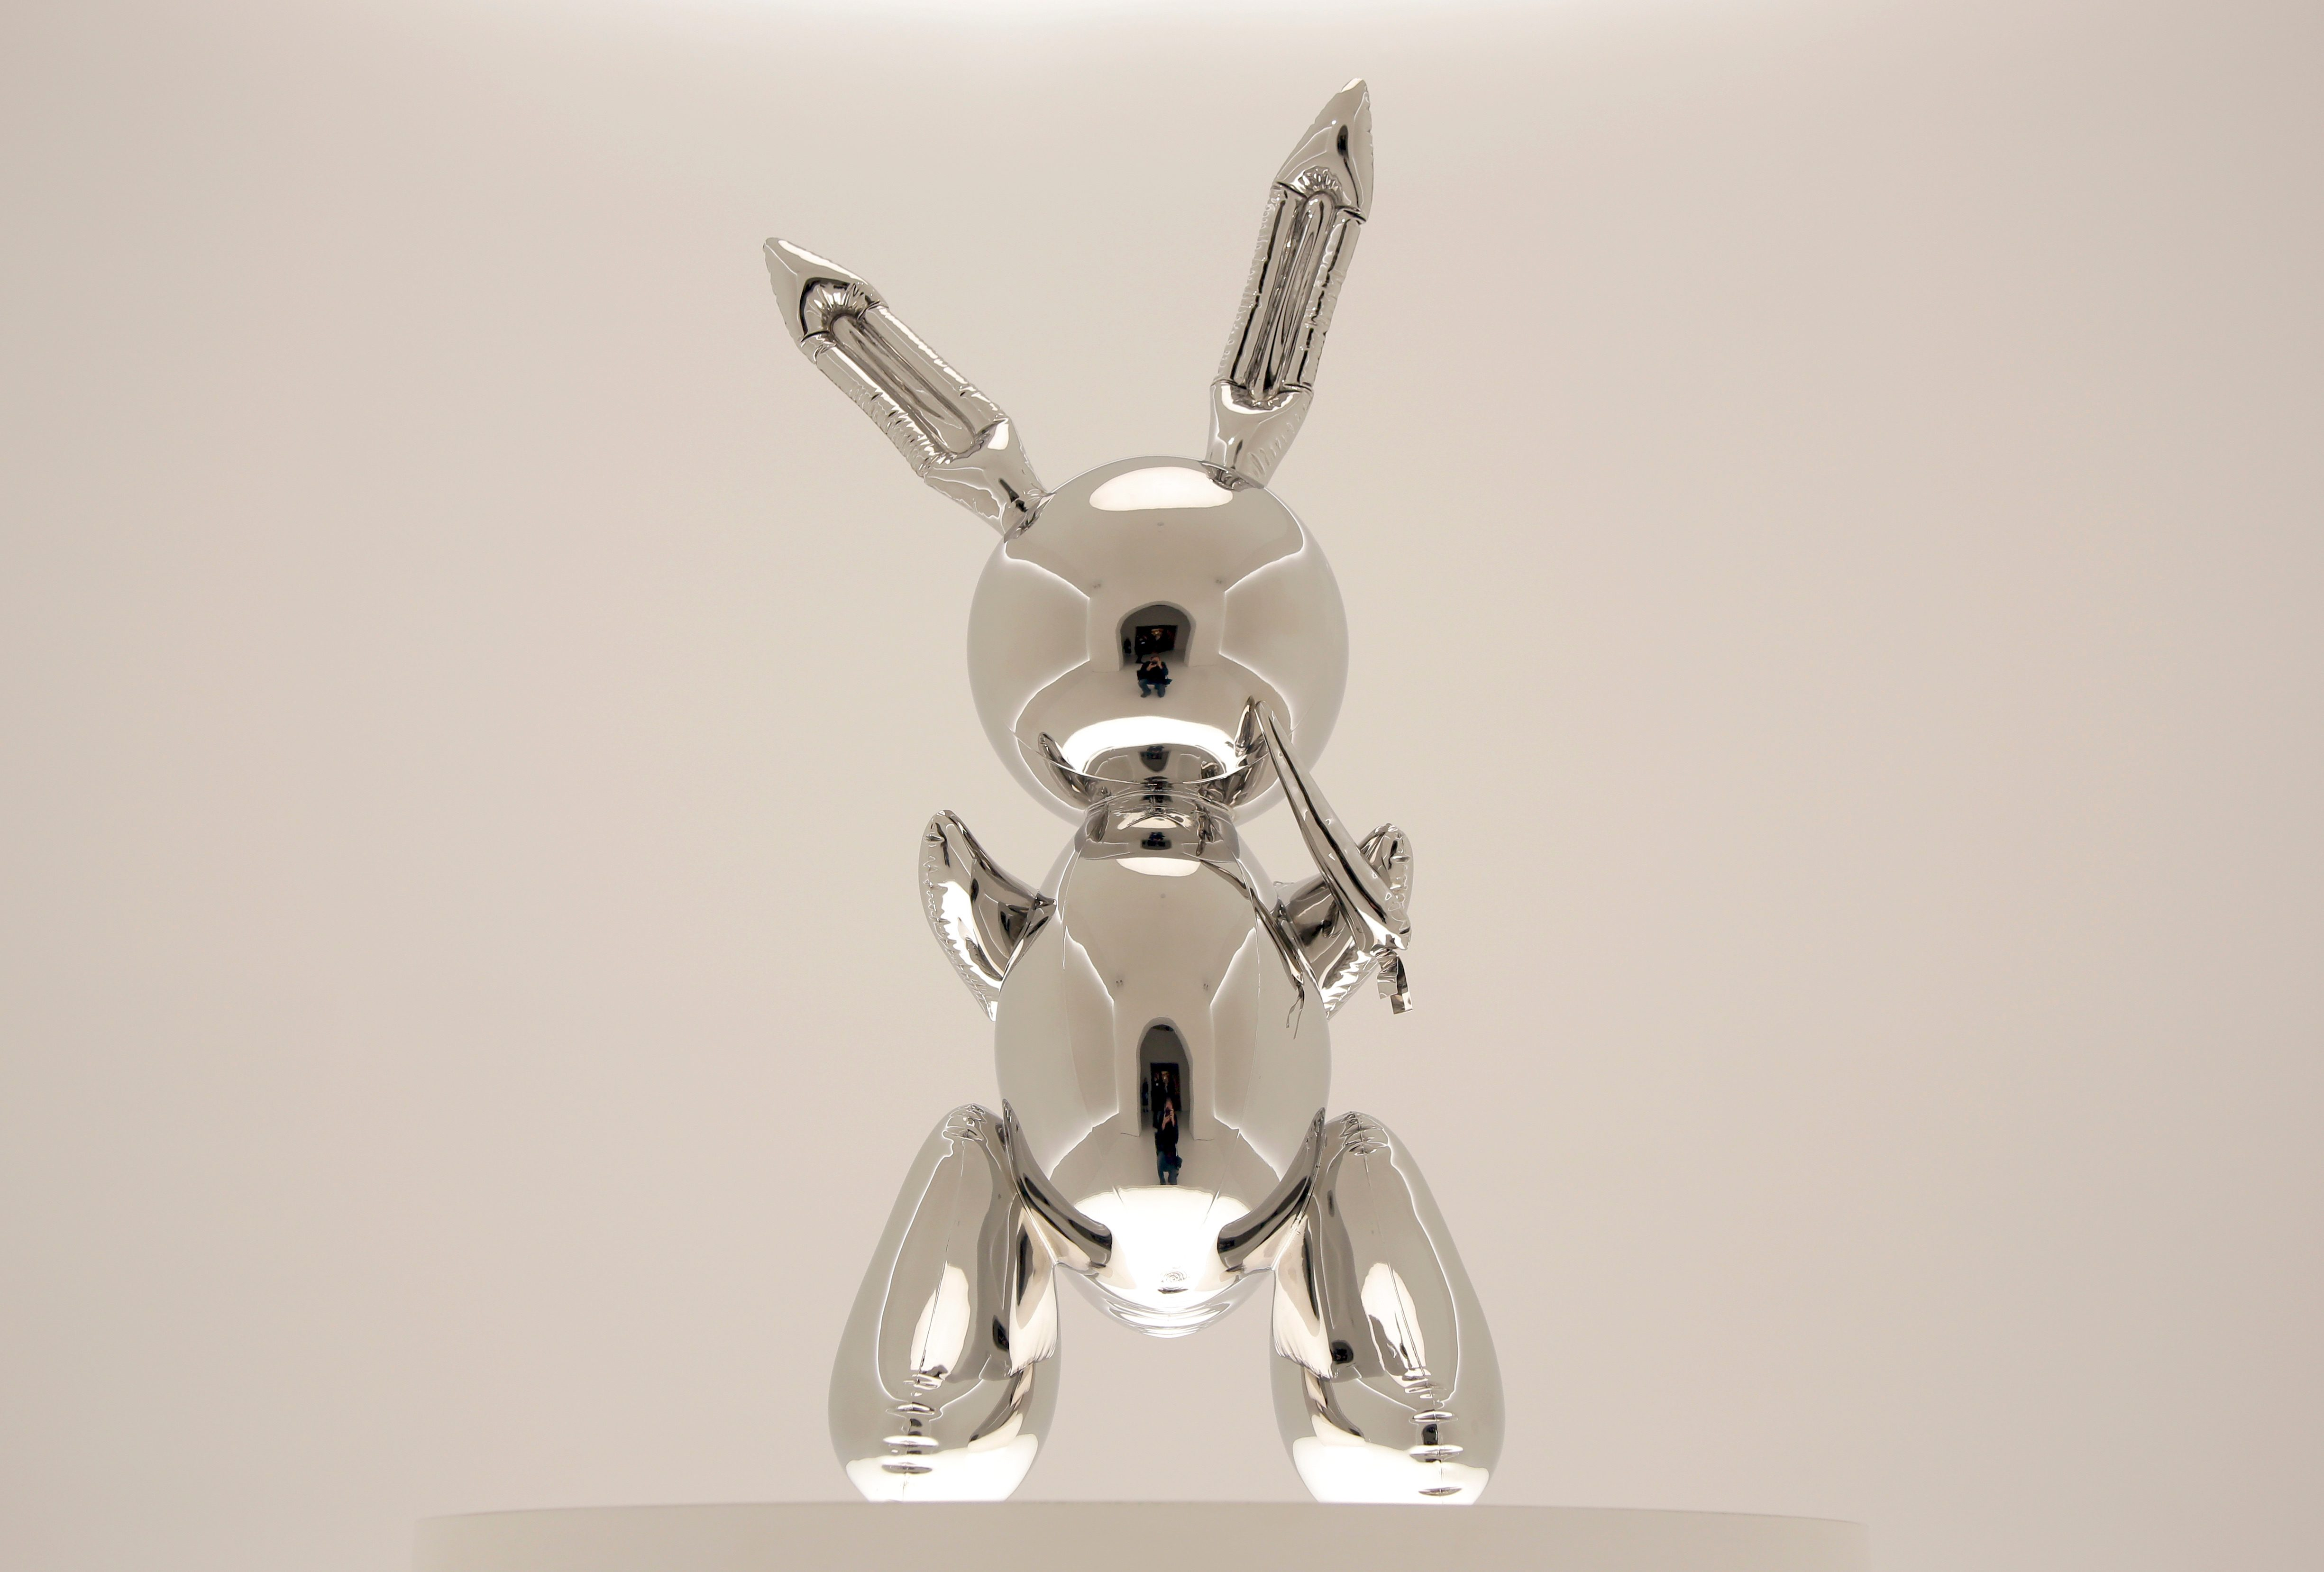 "Mandatory Credit: Photo by Seth Wenig/AP/Shutterstock (10227515c) Rabbit"" by Jeff Koons is displayed during a media preview at Christie's in New York, . This sculpture along with other artworks will be sold in series of auctions starting on May 13, 2019 Auction Jeff Koons, New York, USA - 03 May 2019"